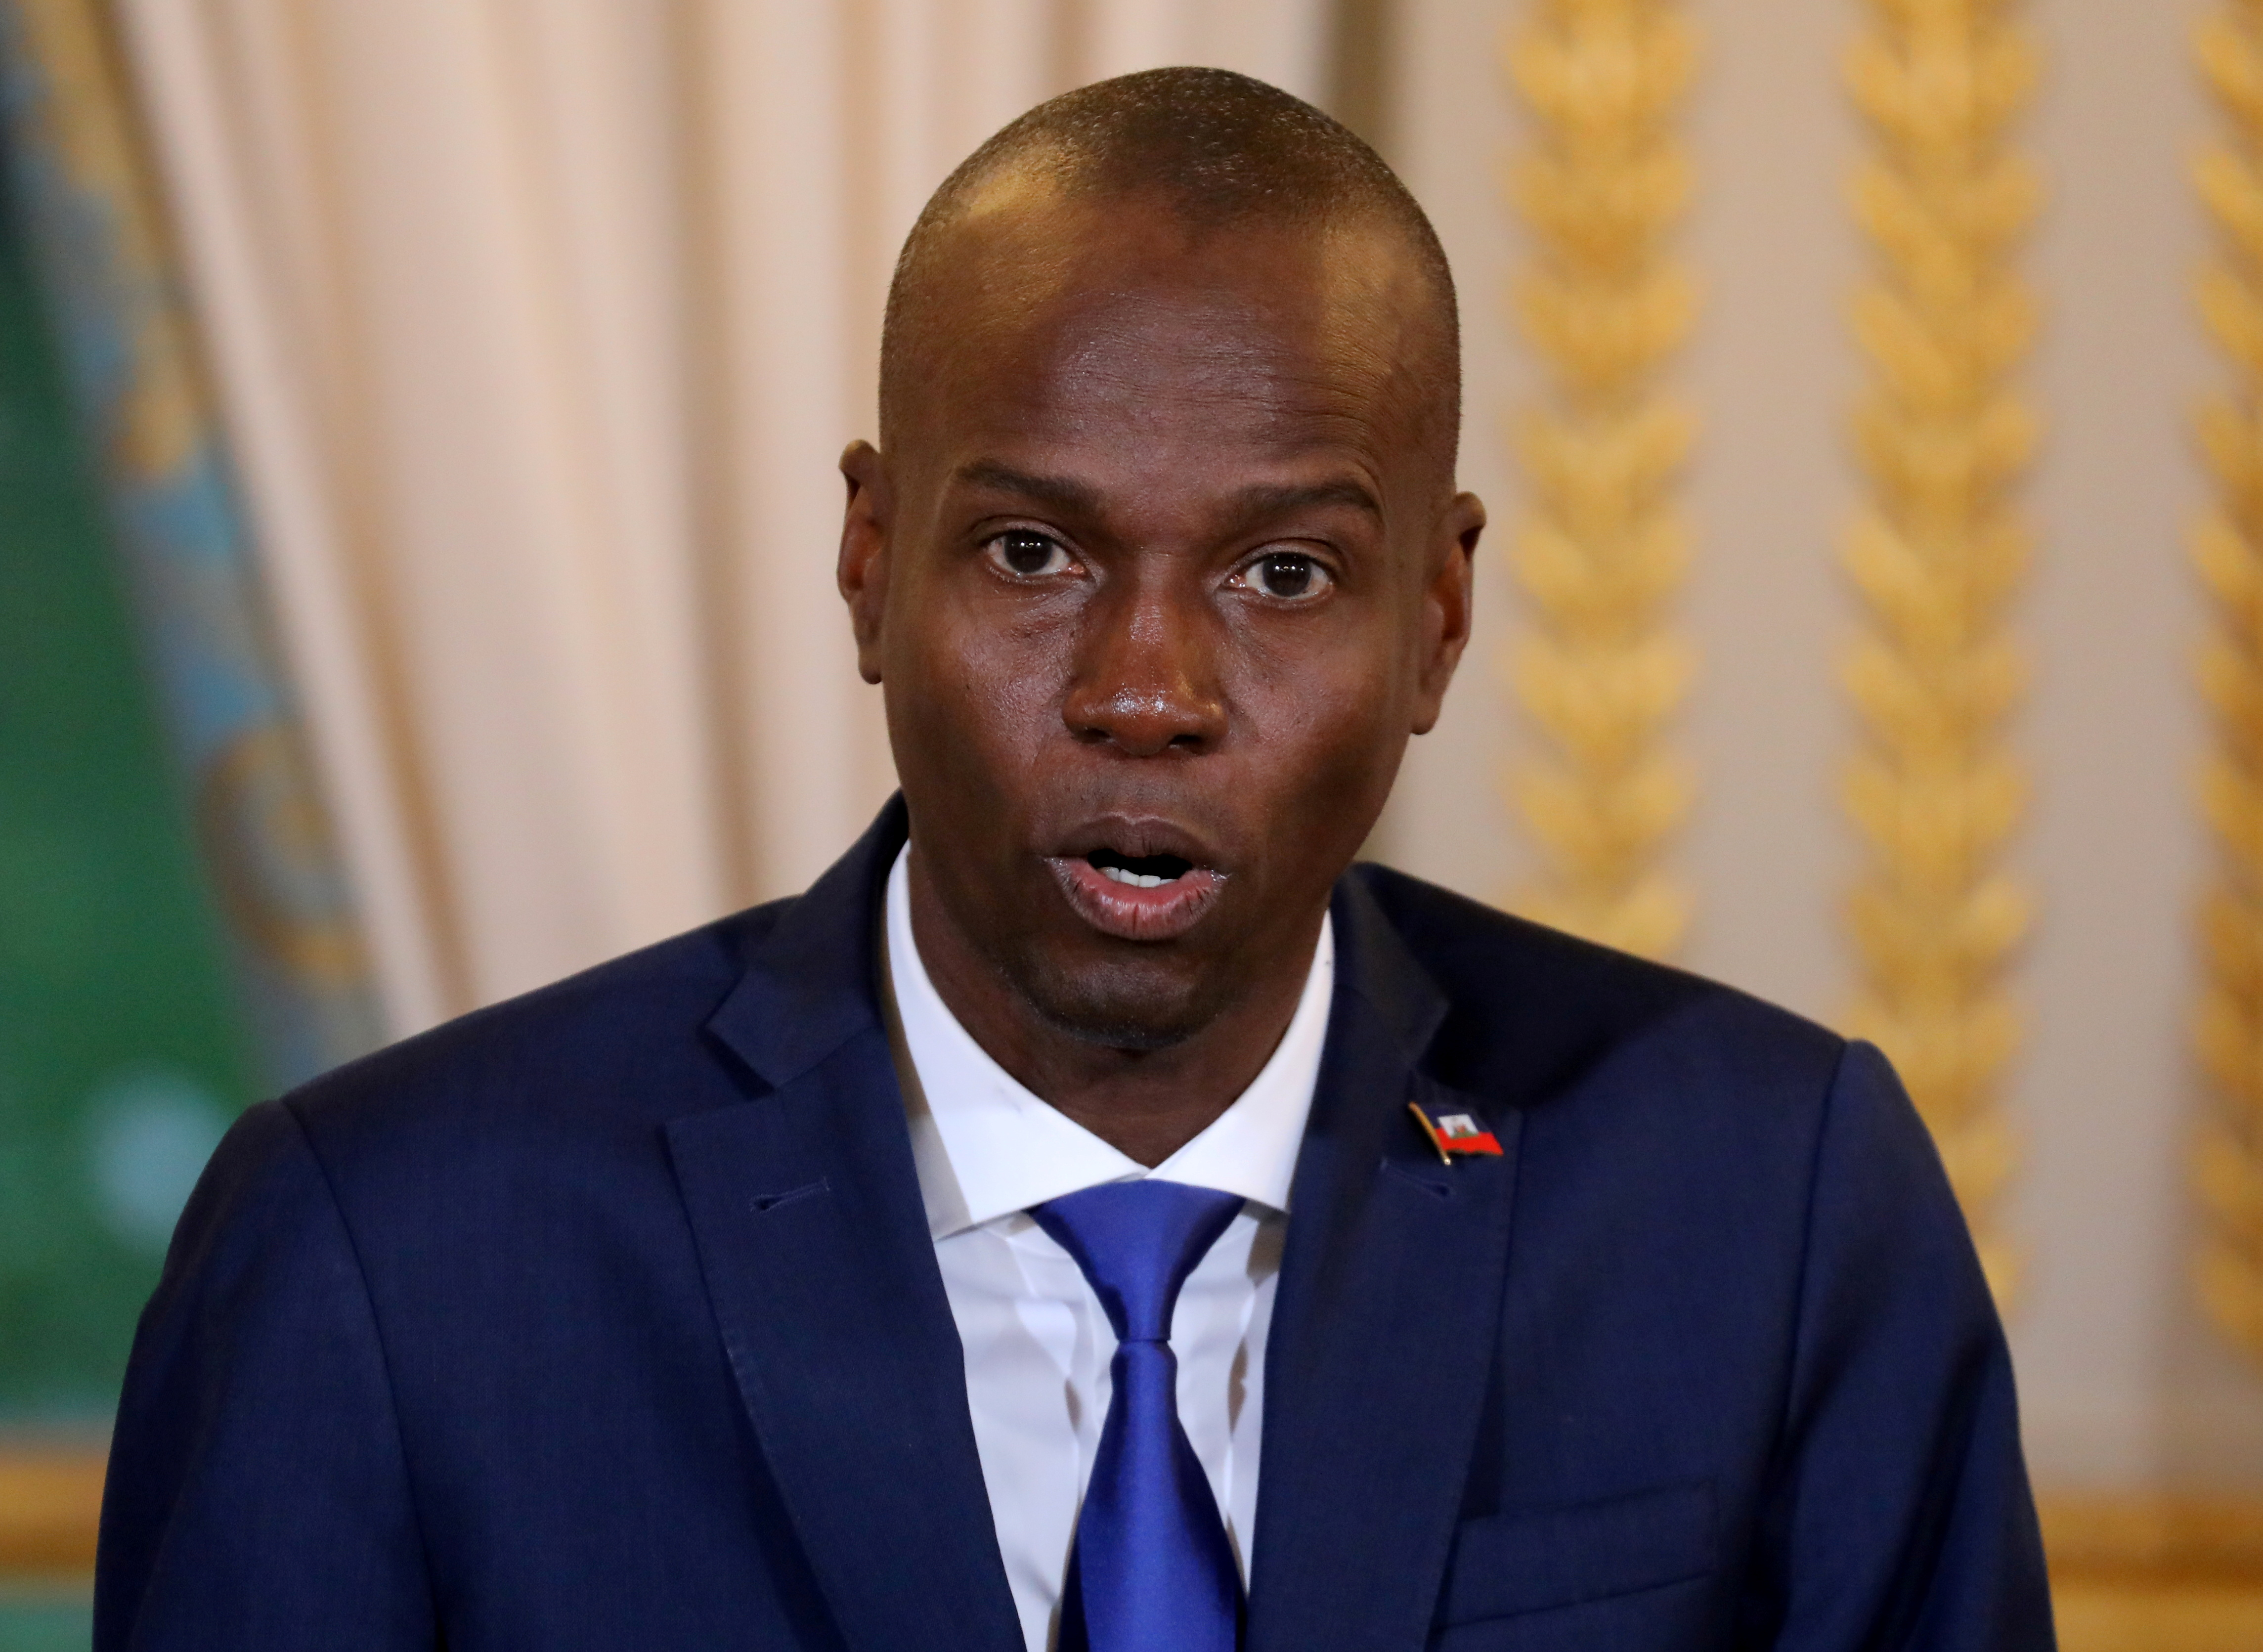 Haitian President Moise Jovenel speaks during a press conference at the Elysee Palace in Paris, France, December 11, 2017.  REUTERS/Ludovic Marin/Pool/File Photo